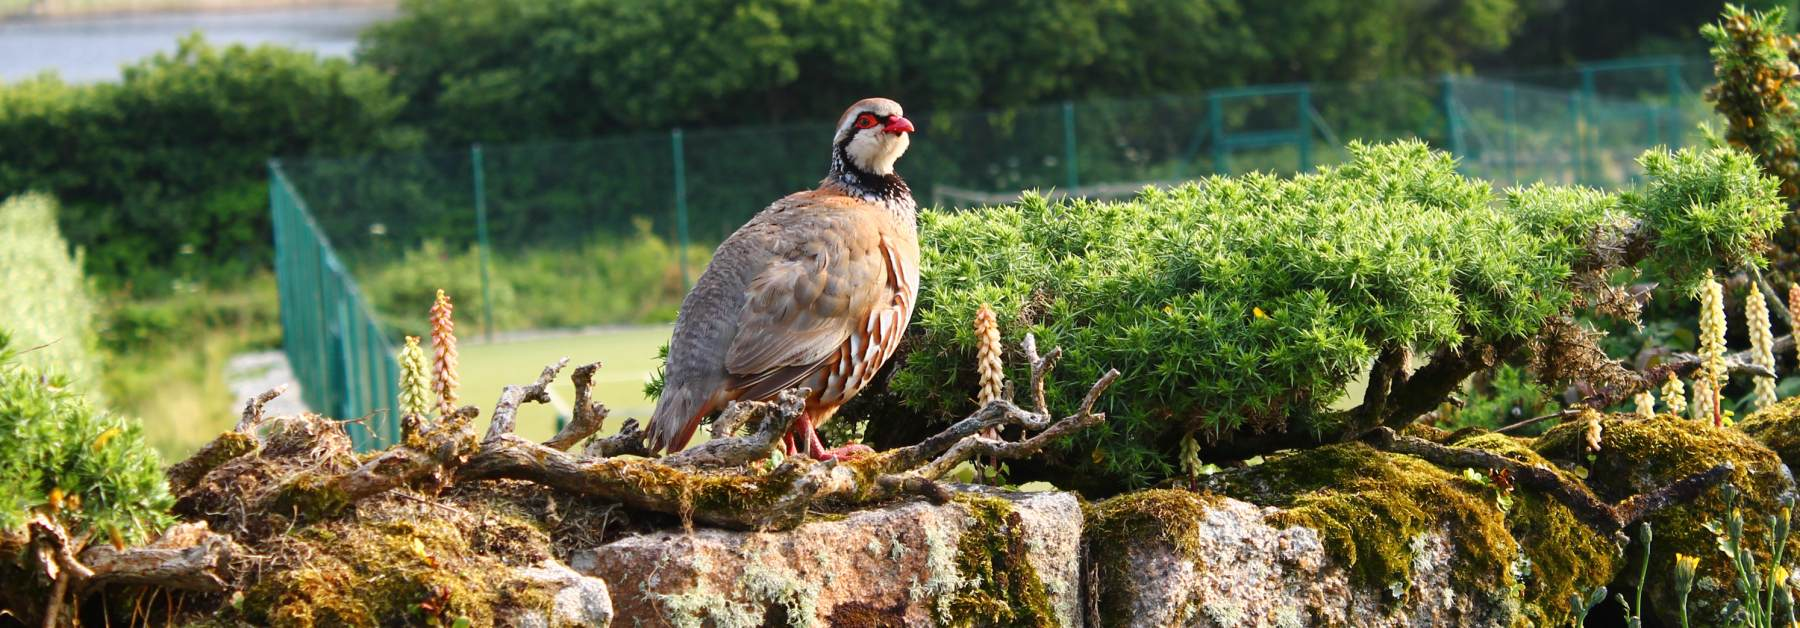 scilly-grouse-stone-wall